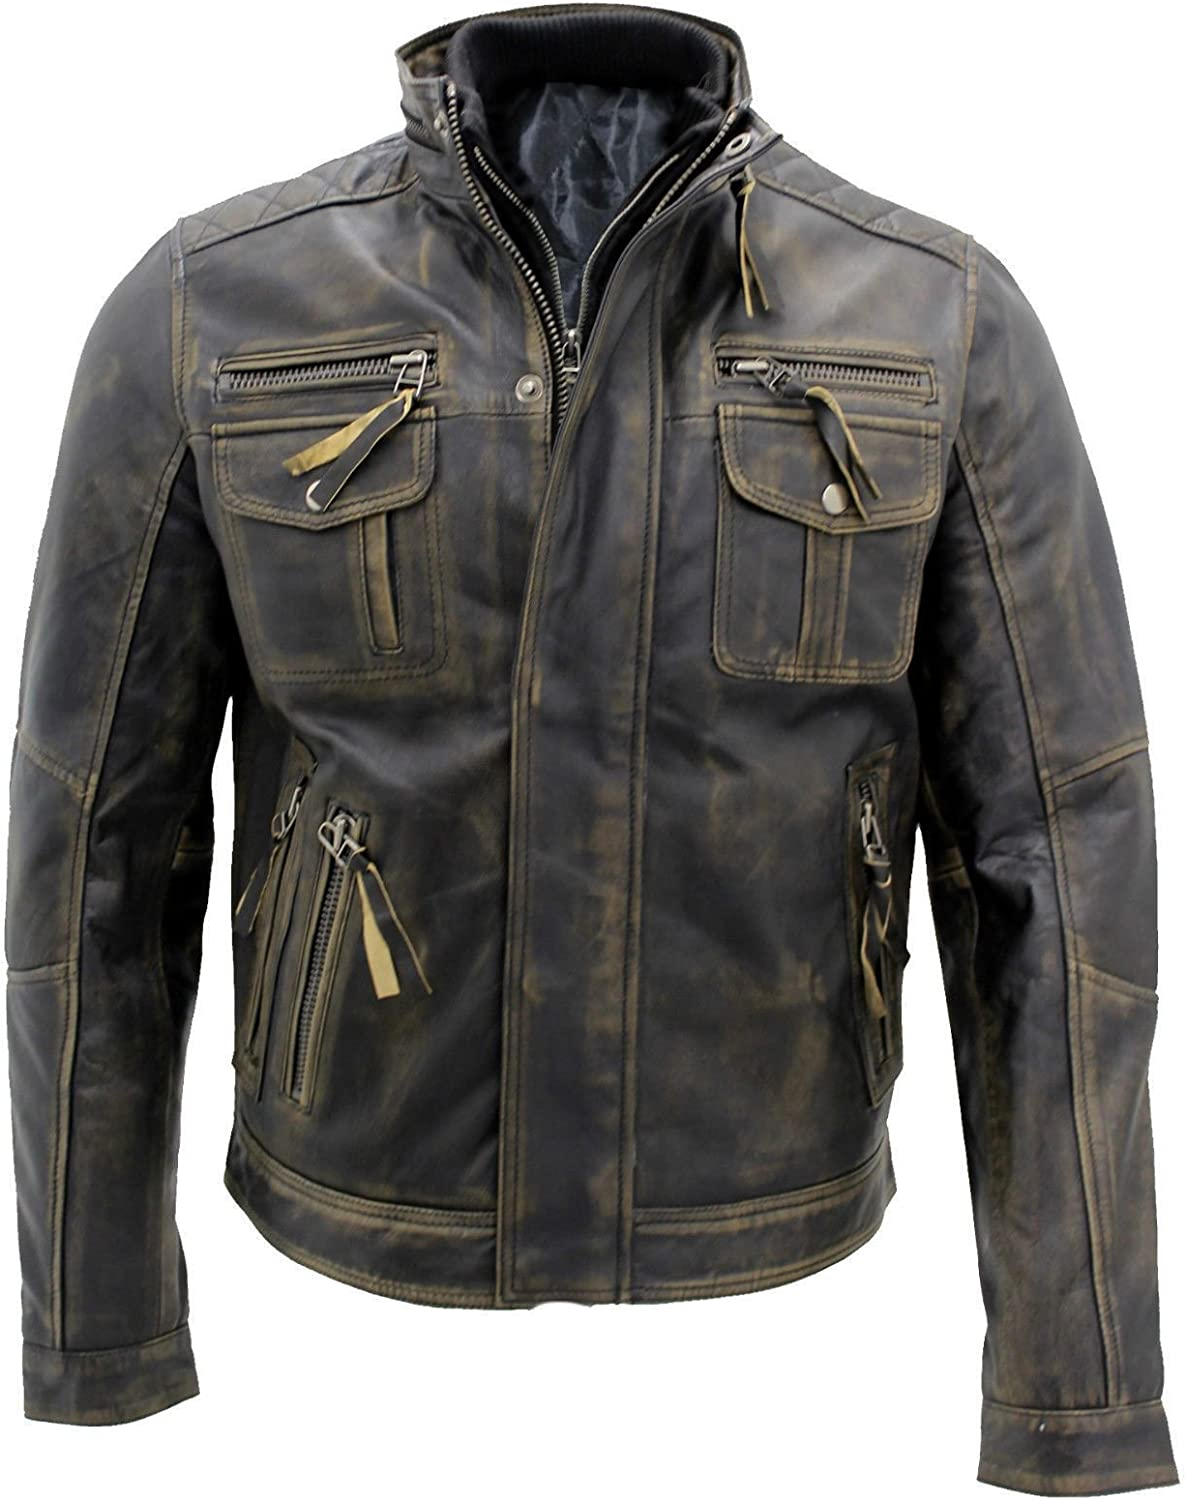 Men's Brown Vintage Style Distress Leather Jacket, Goatskin Quilted Lining